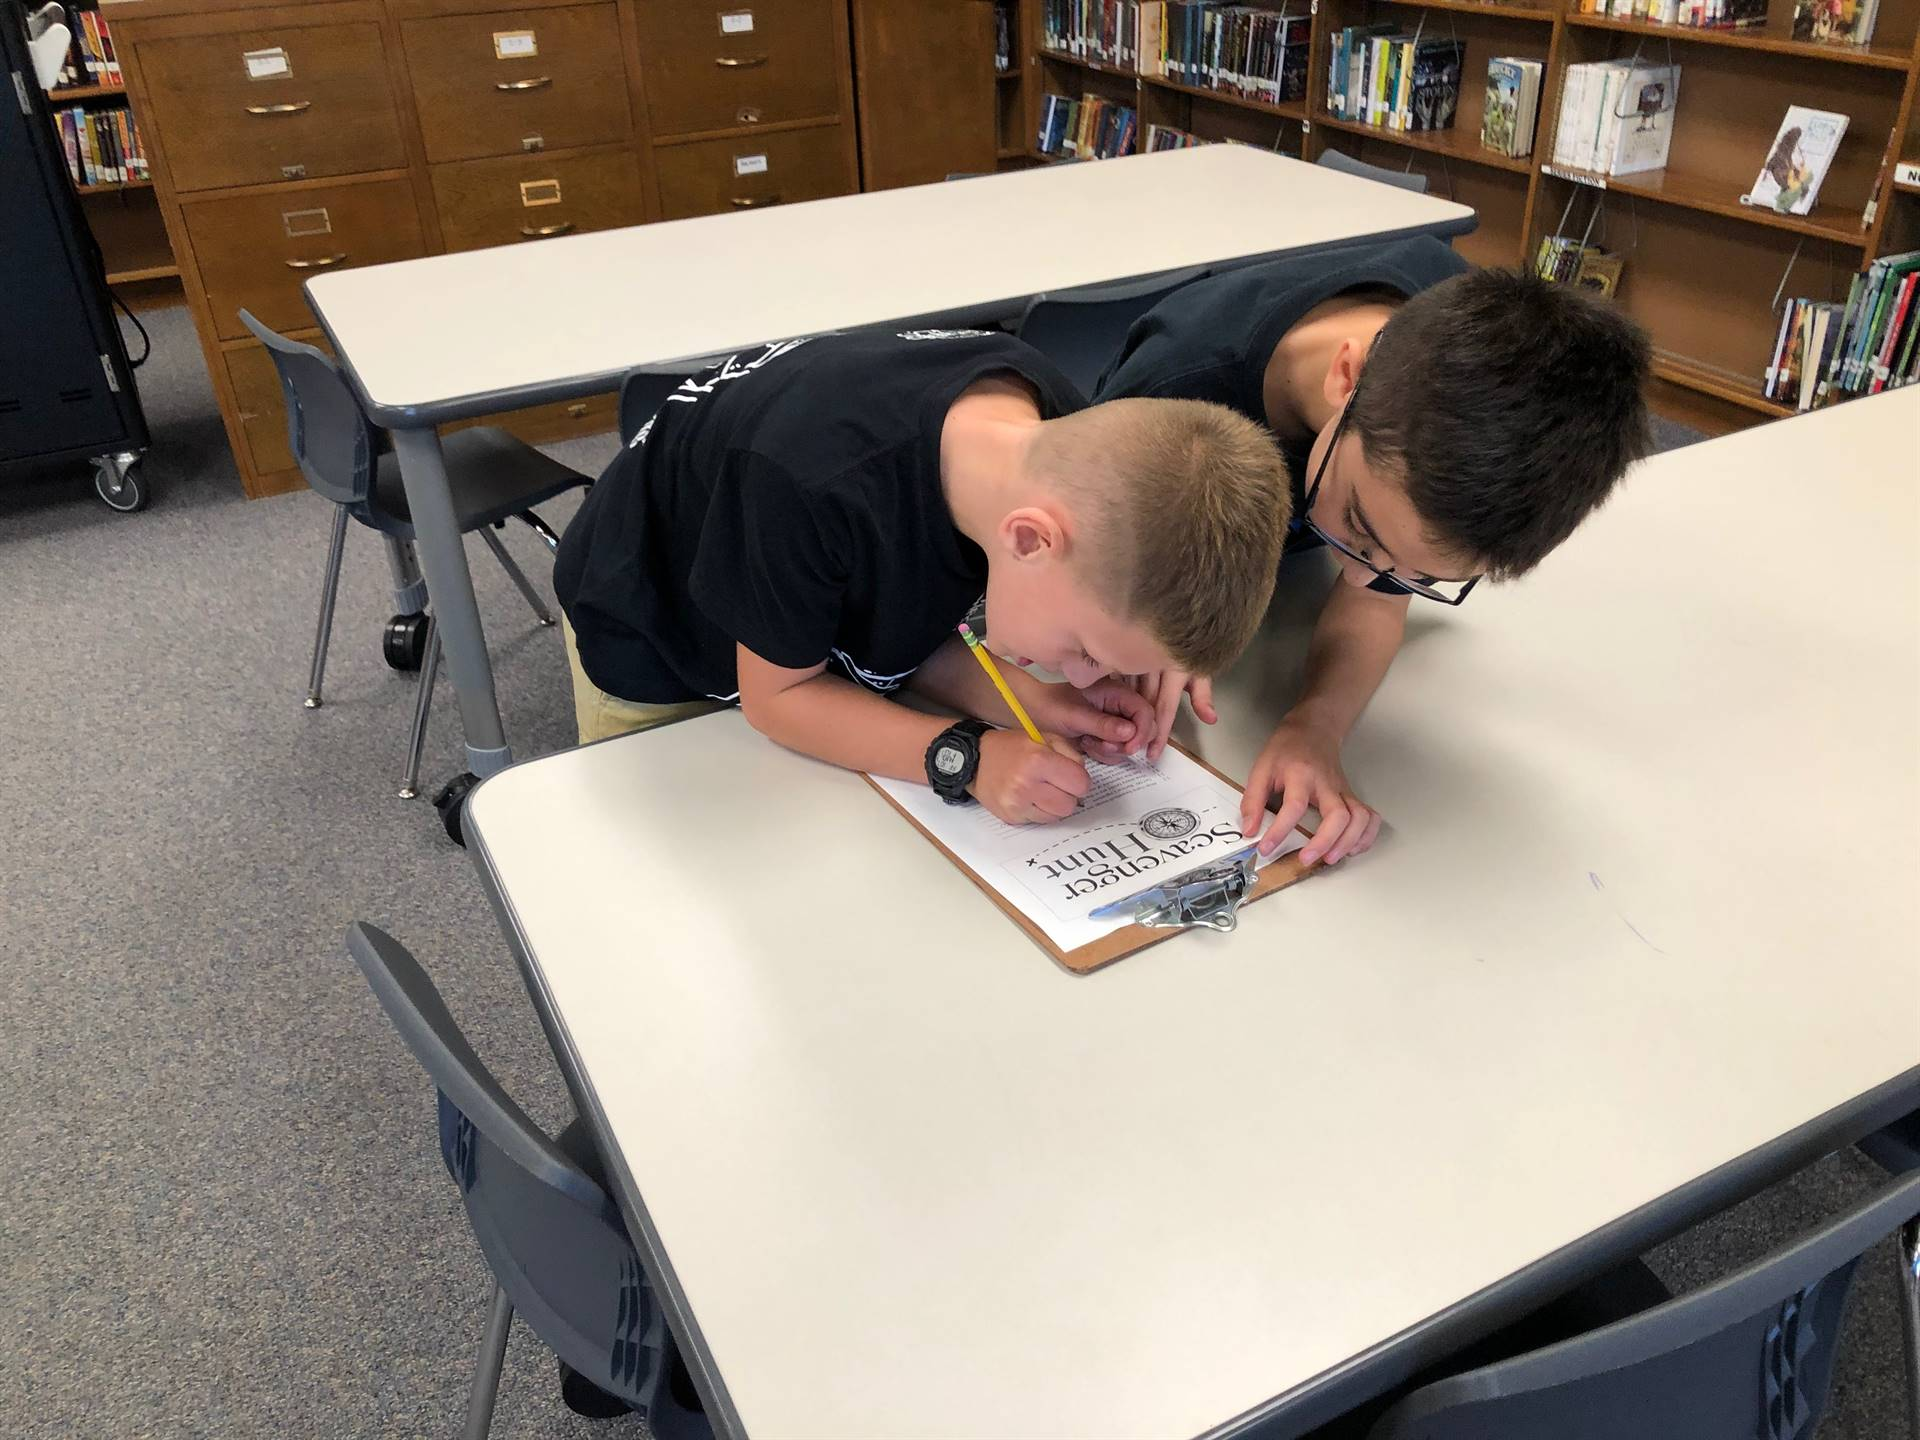 Students working on scavenger hunt clues